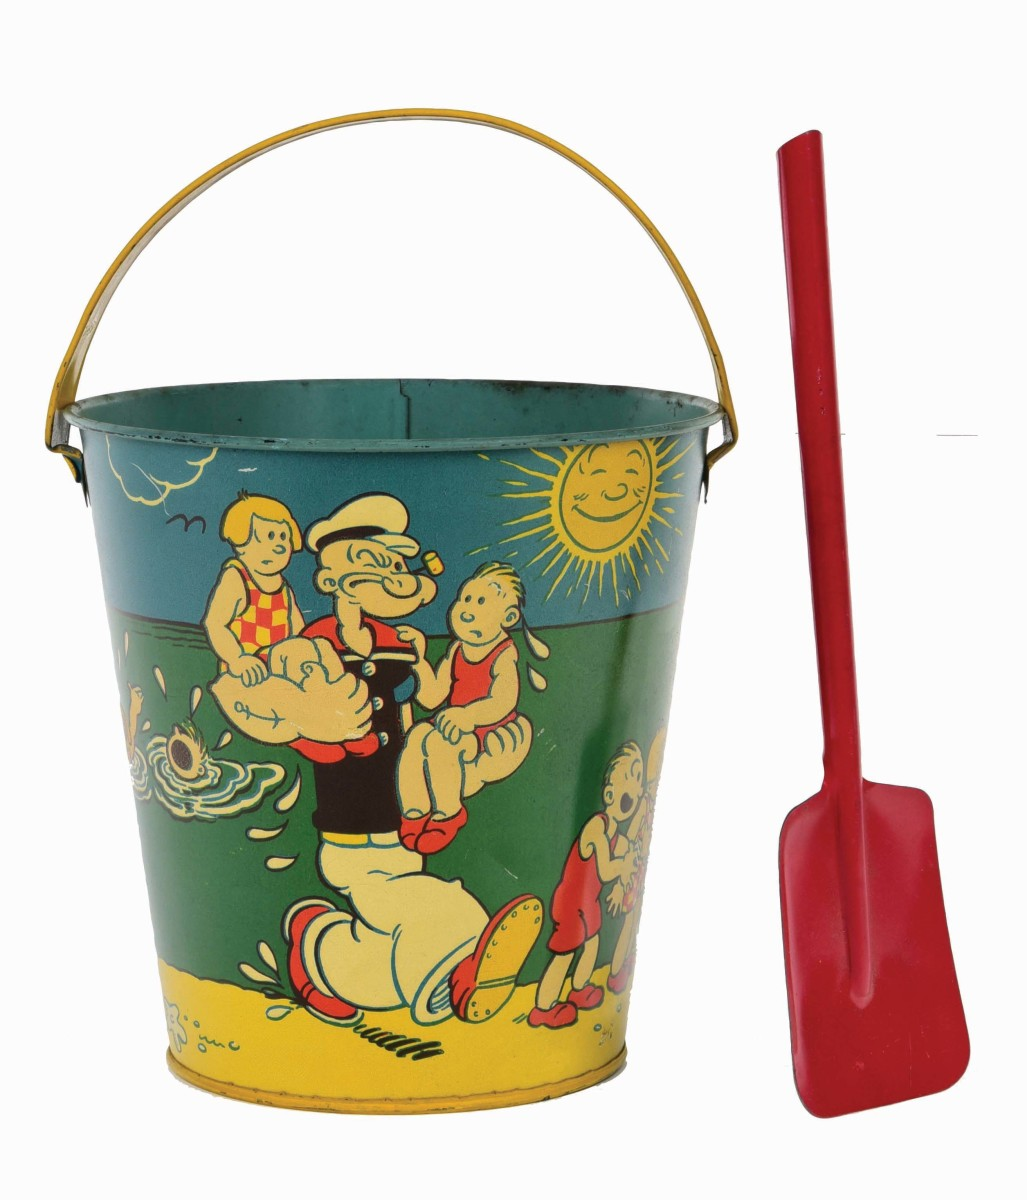 """This scarce Popeye tin litho sand pail and scoop by Chein had 21 bidders after it. It shows great scenes of Popeye rescuing kids from the water and the other side shows him handing them a sand pail. Marked """"J. Chein & Co. USA"""" and """"Copyright 1932 King Features Syndicate Inc.""""; 6"""" x 6"""" x 6"""", $1,722."""